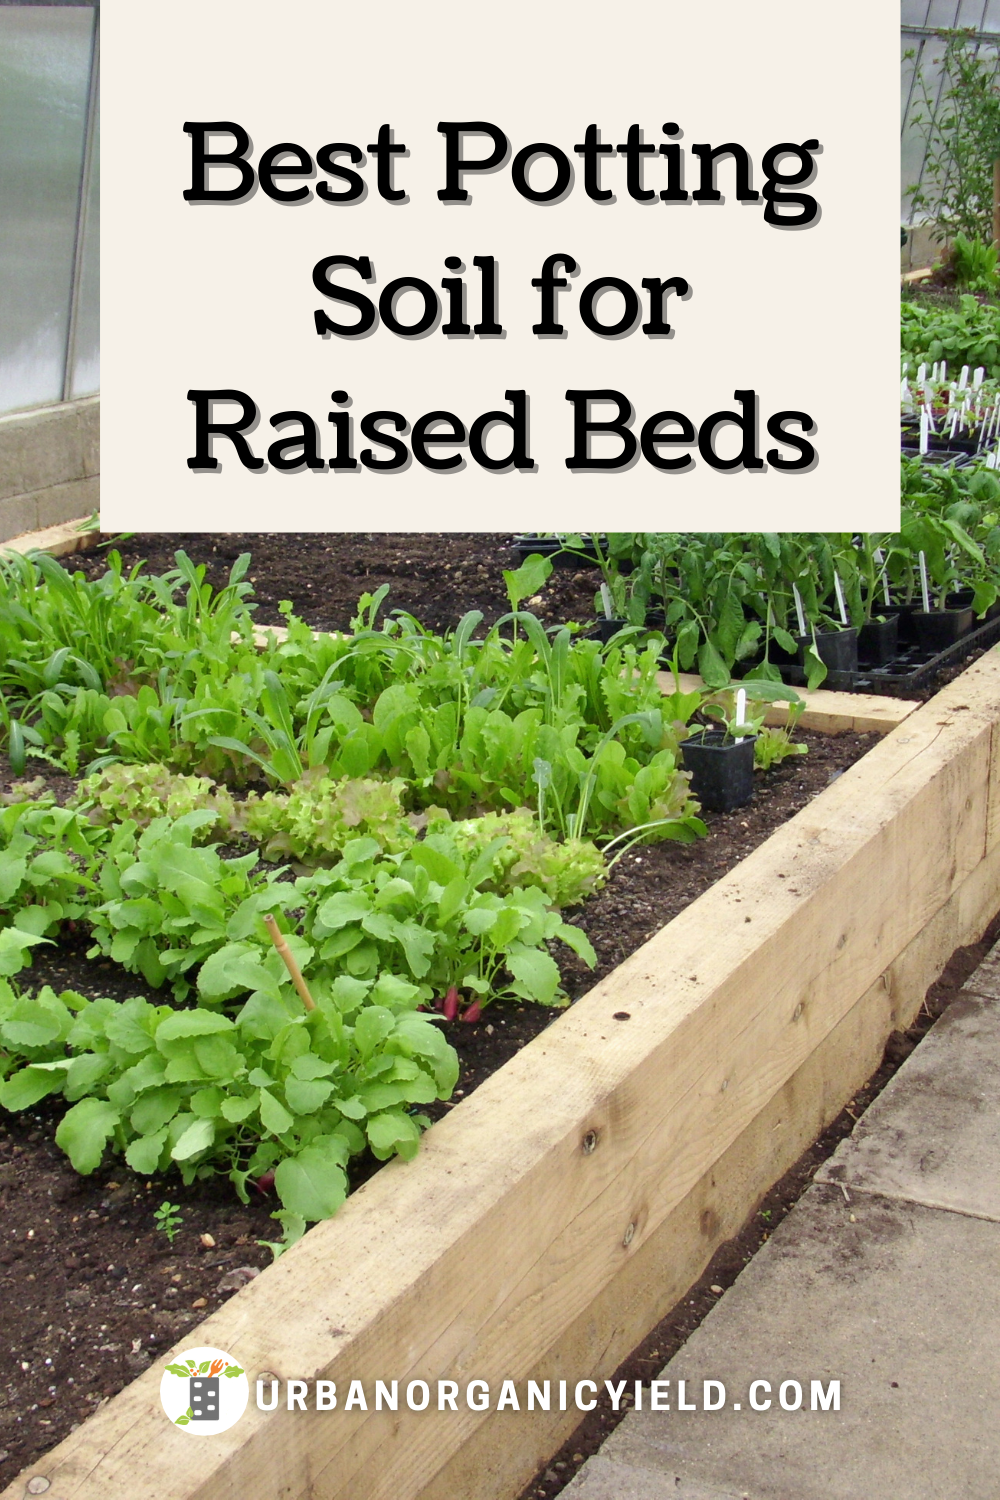 Why Do Gardeners Use Raised Beds